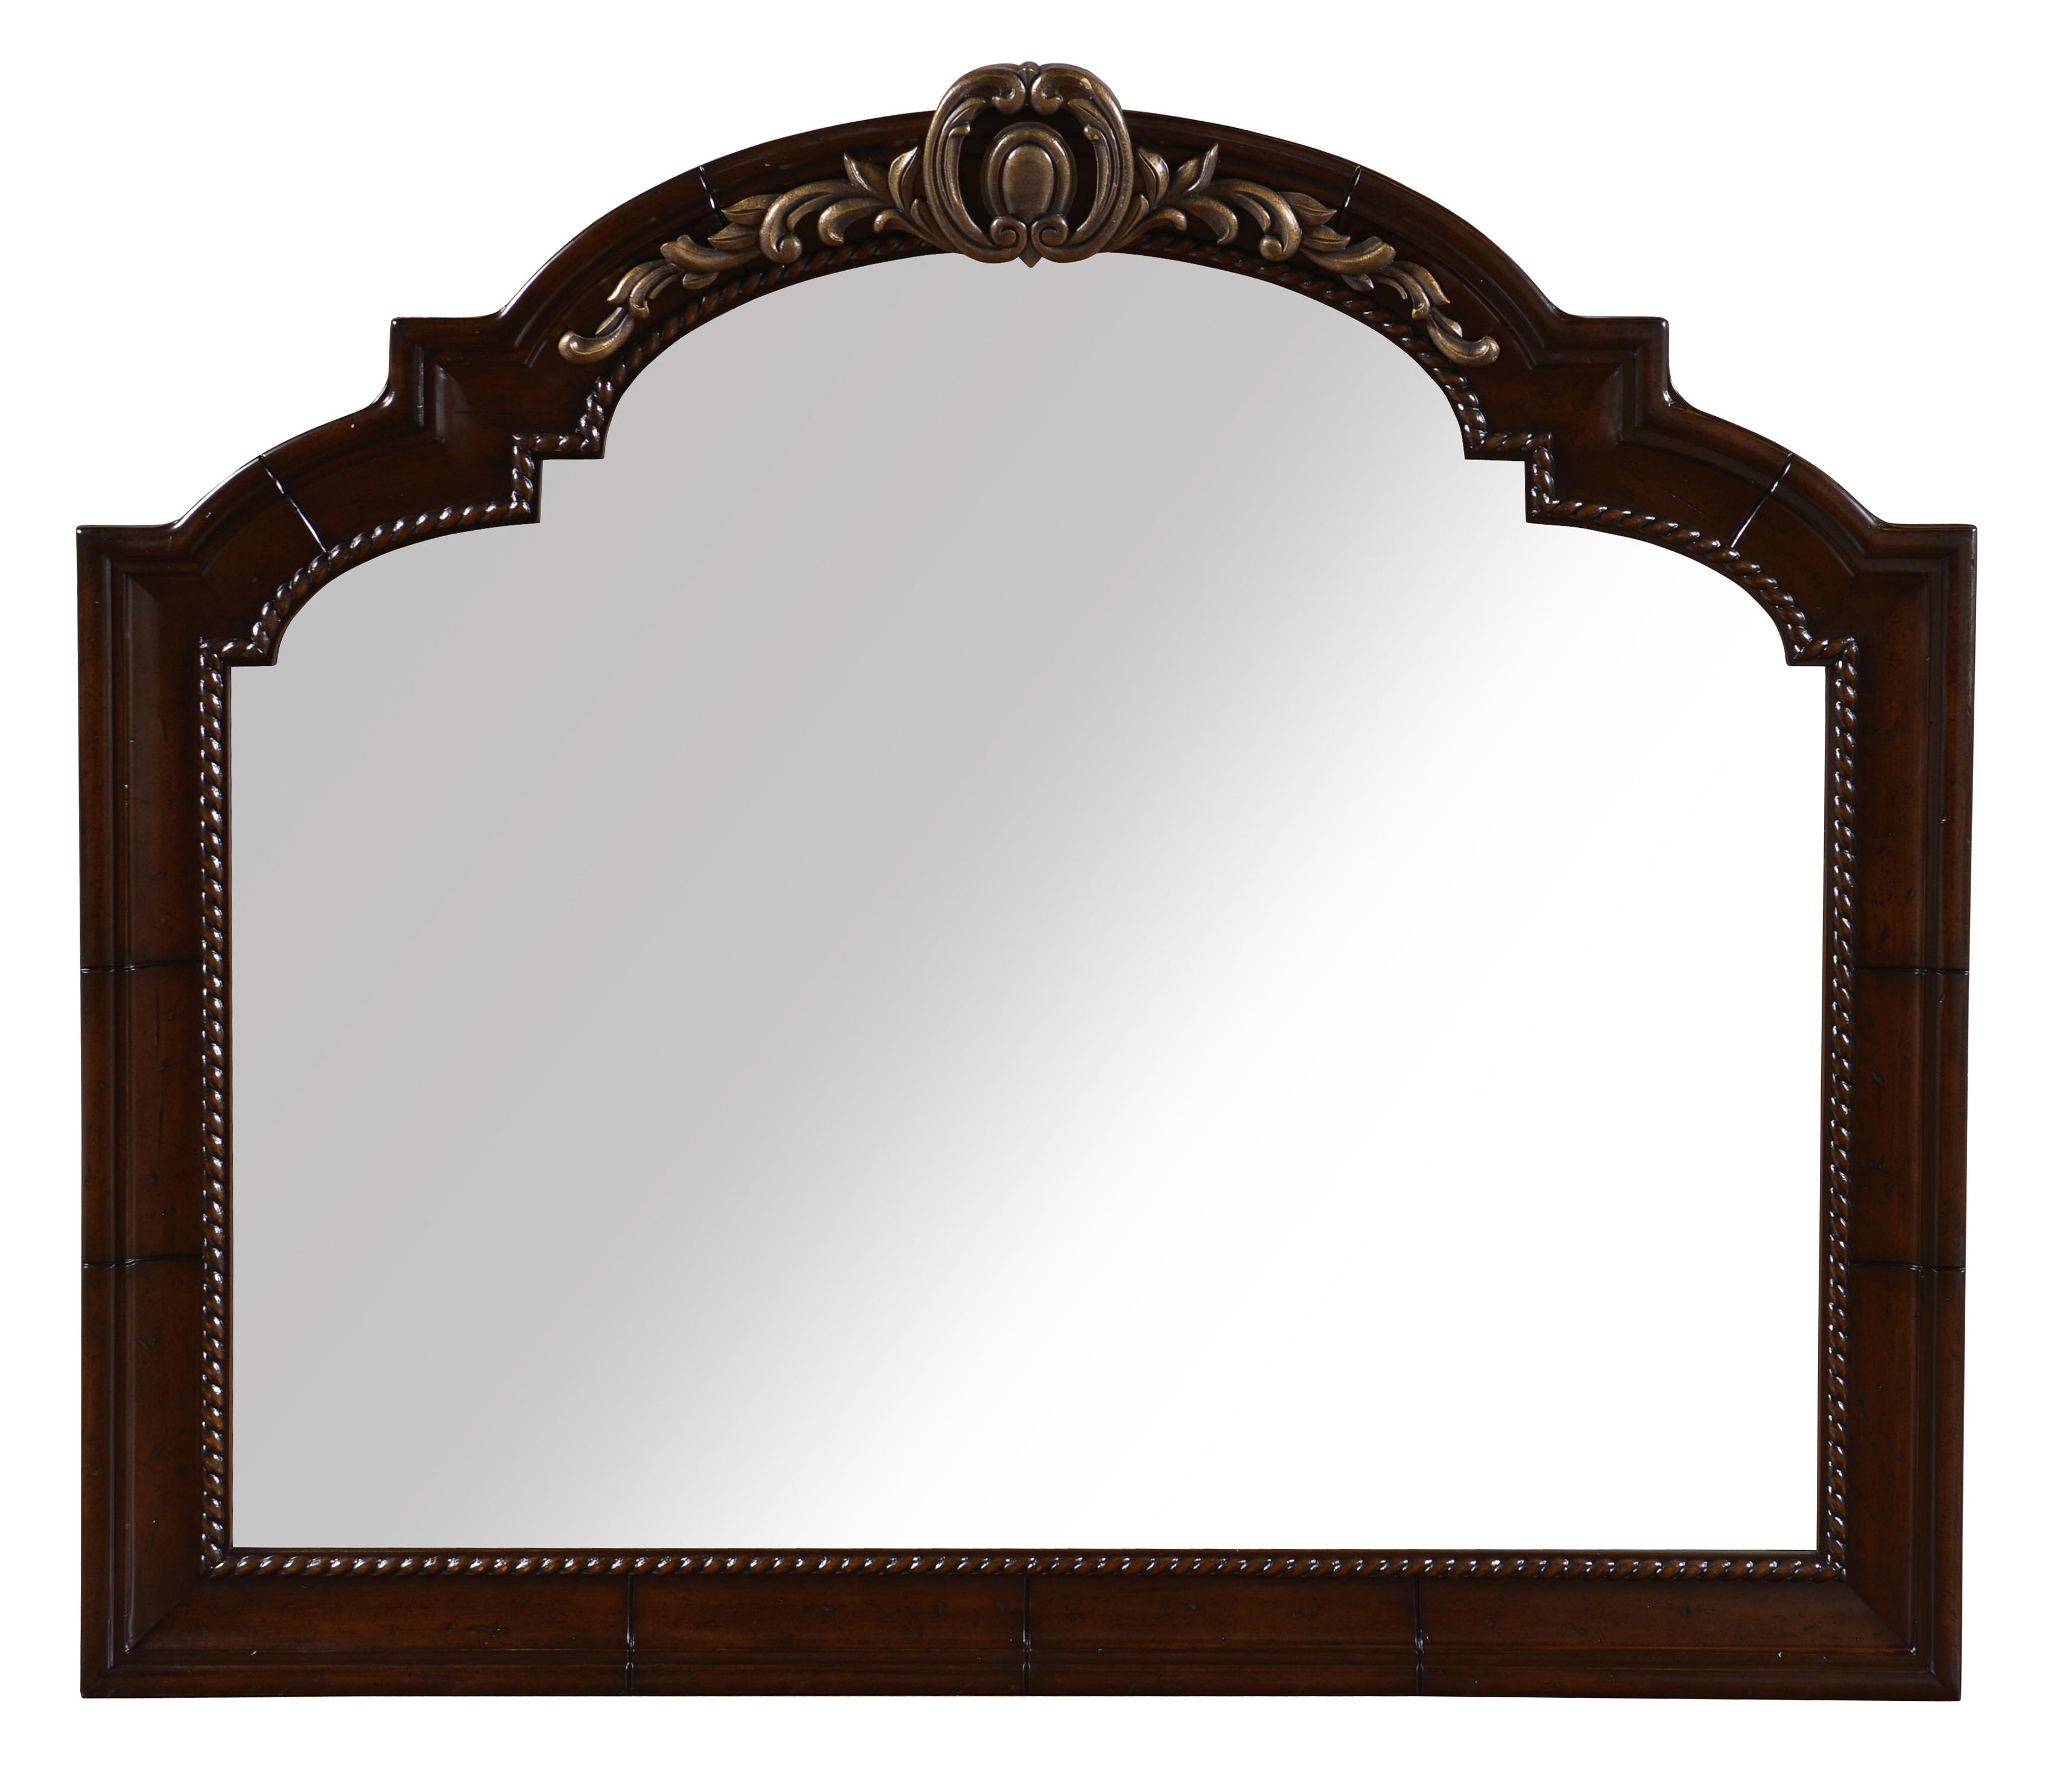 Valencia Traditional Landscape Wall Mirror W/ Metal Detaila.r.t (Image 15 of 20)